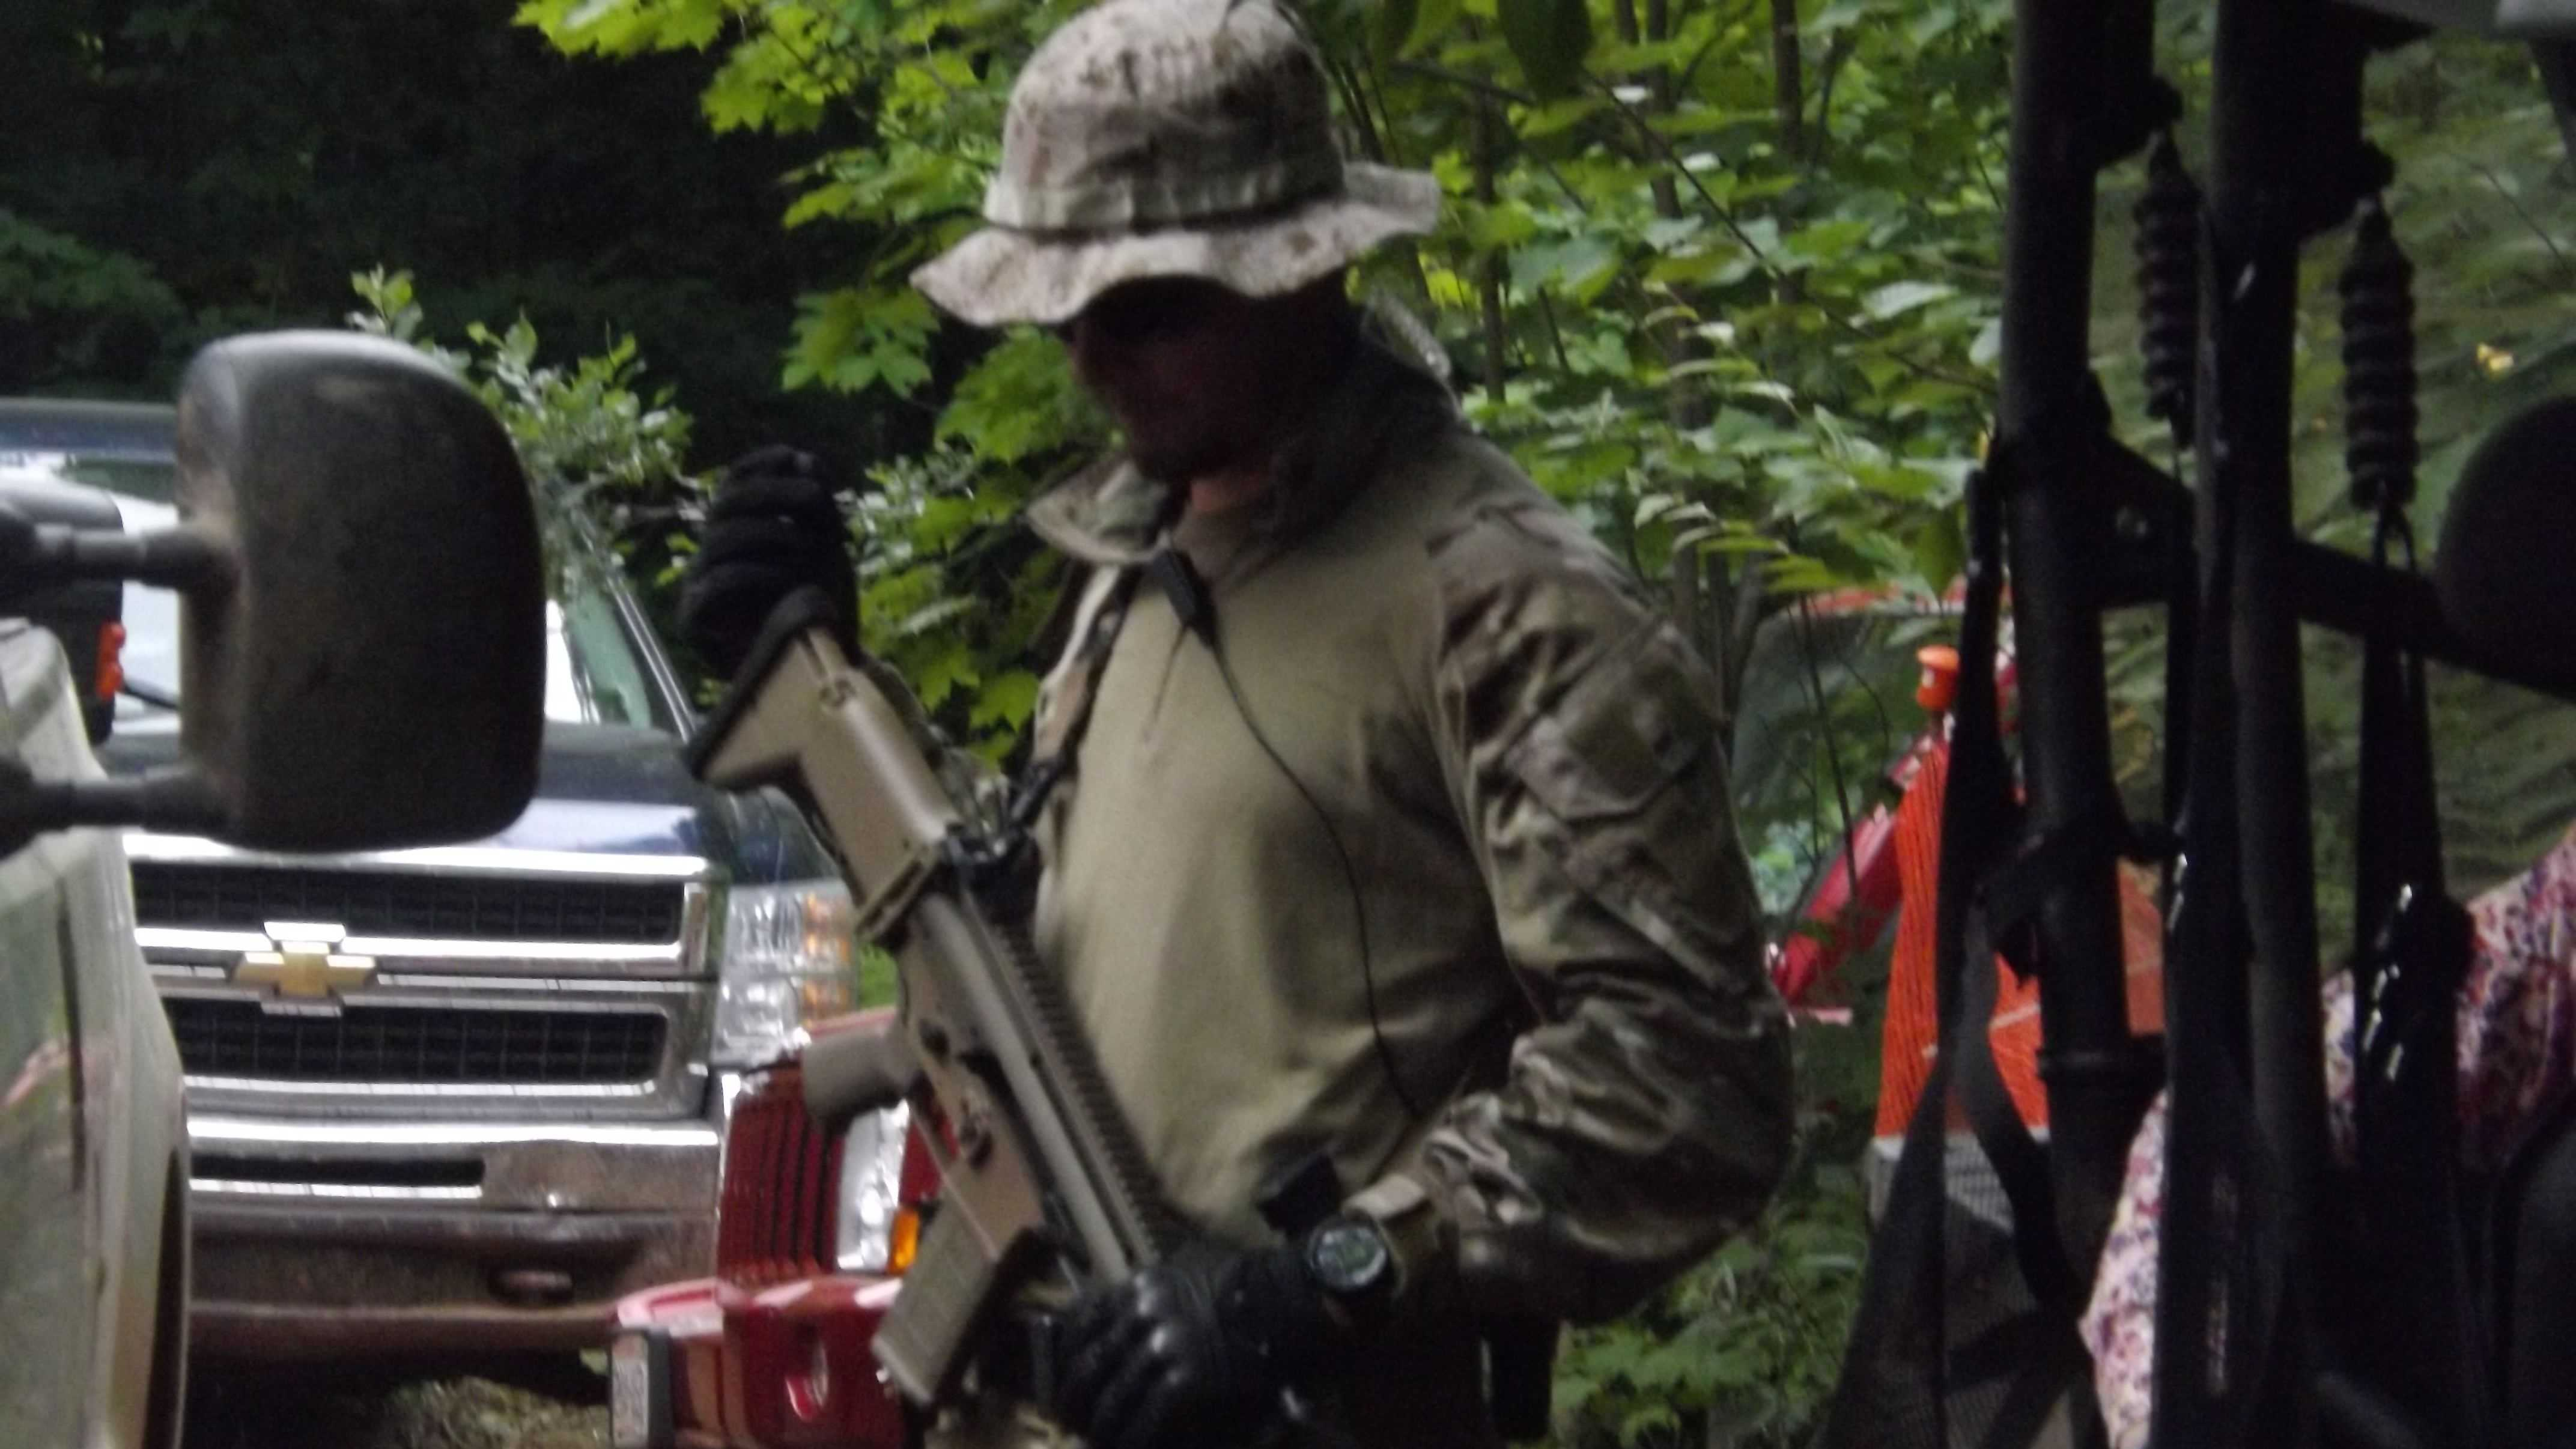 An armed guard from Bulletproof Securities of Arizona provides security at the Gogebic Taconite mine site near Mellen, Wis.